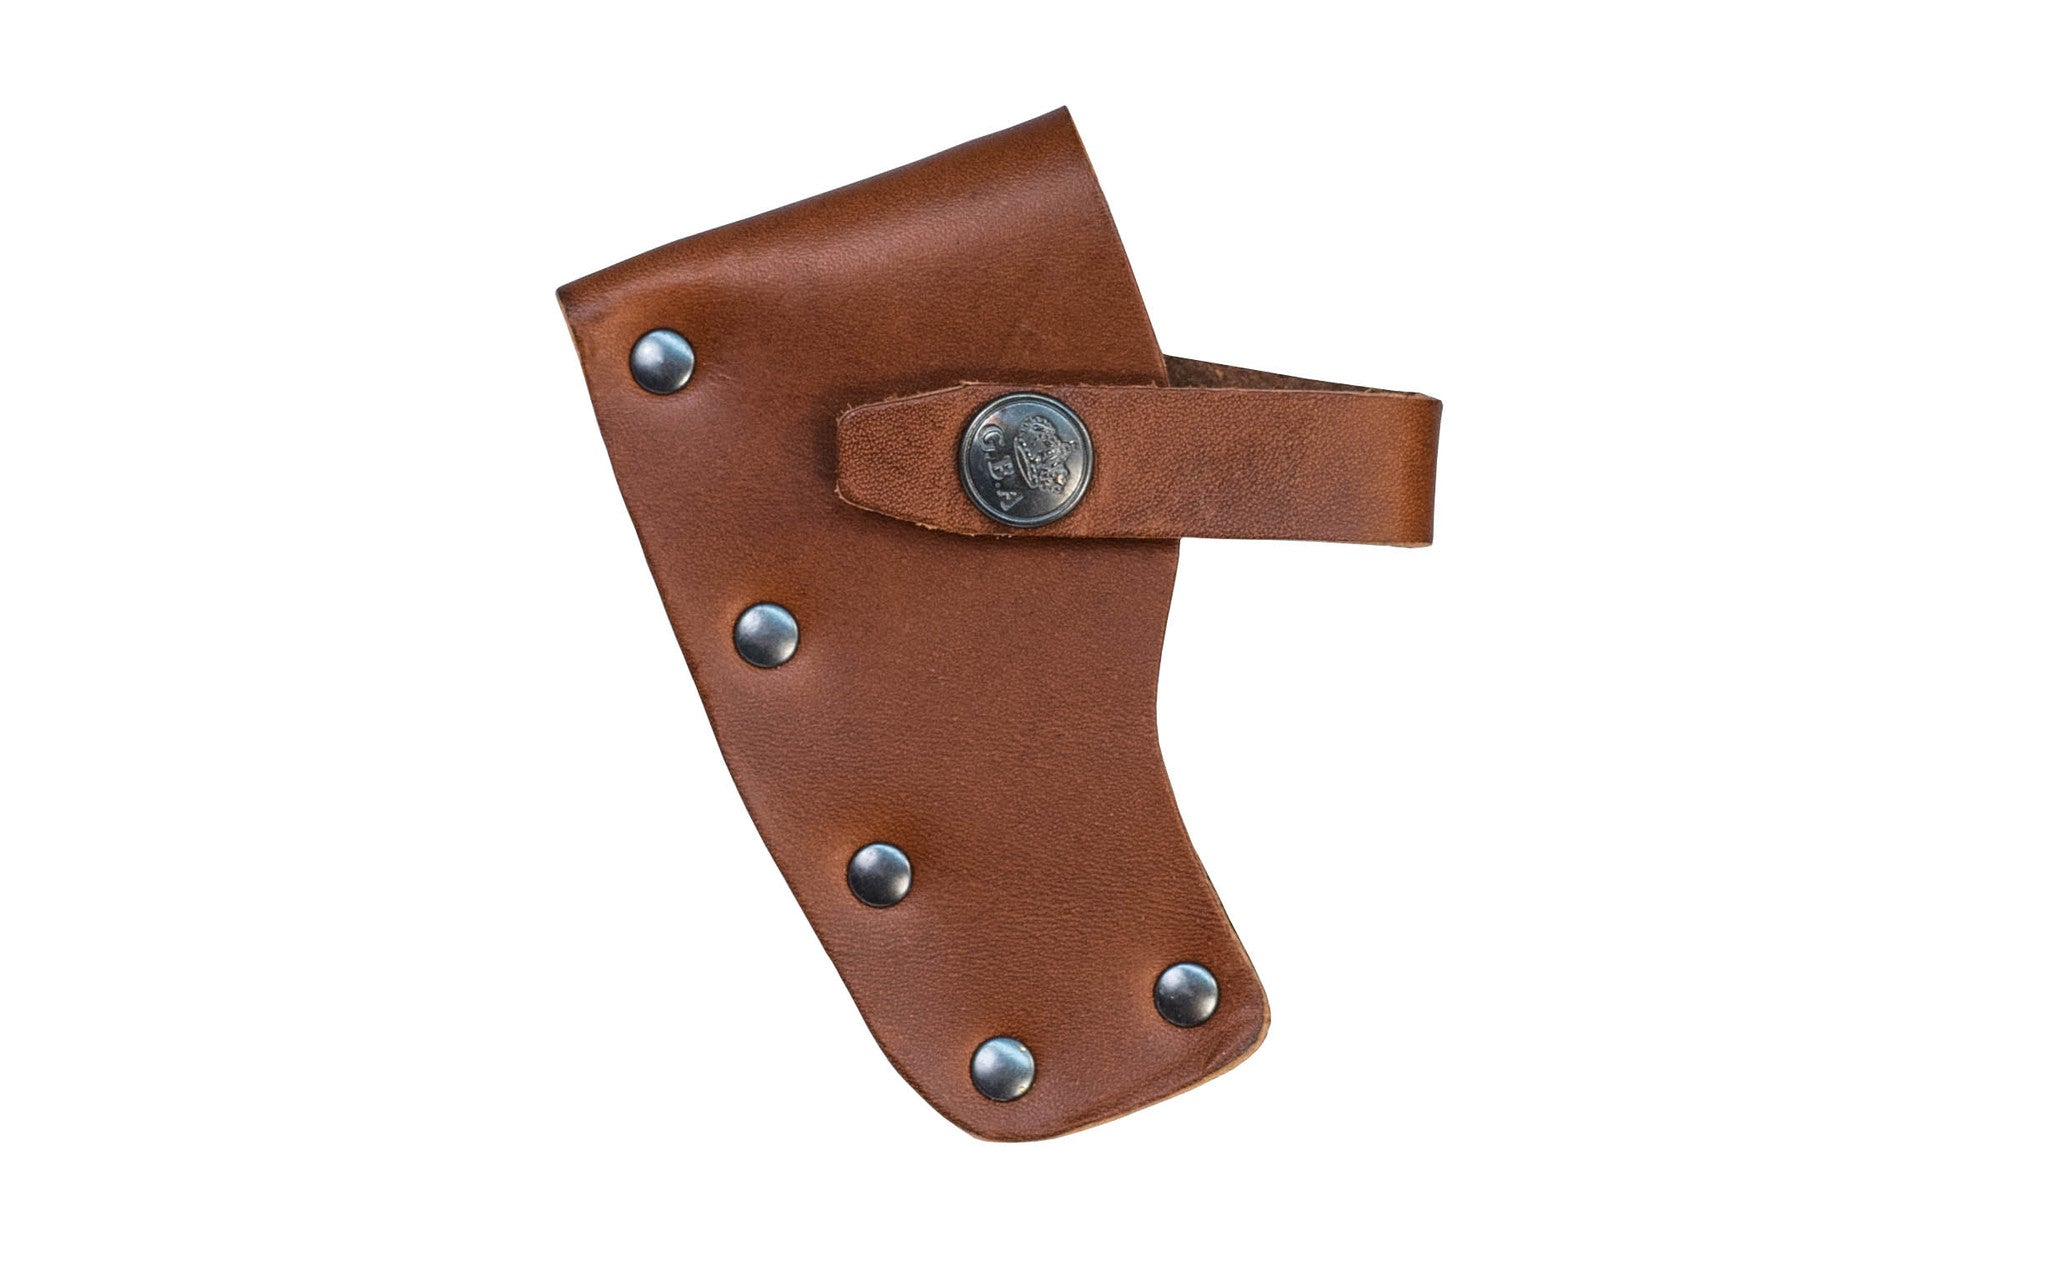 Gransfors Bruk Leather Sheath for Carpenter's Axe No. 465